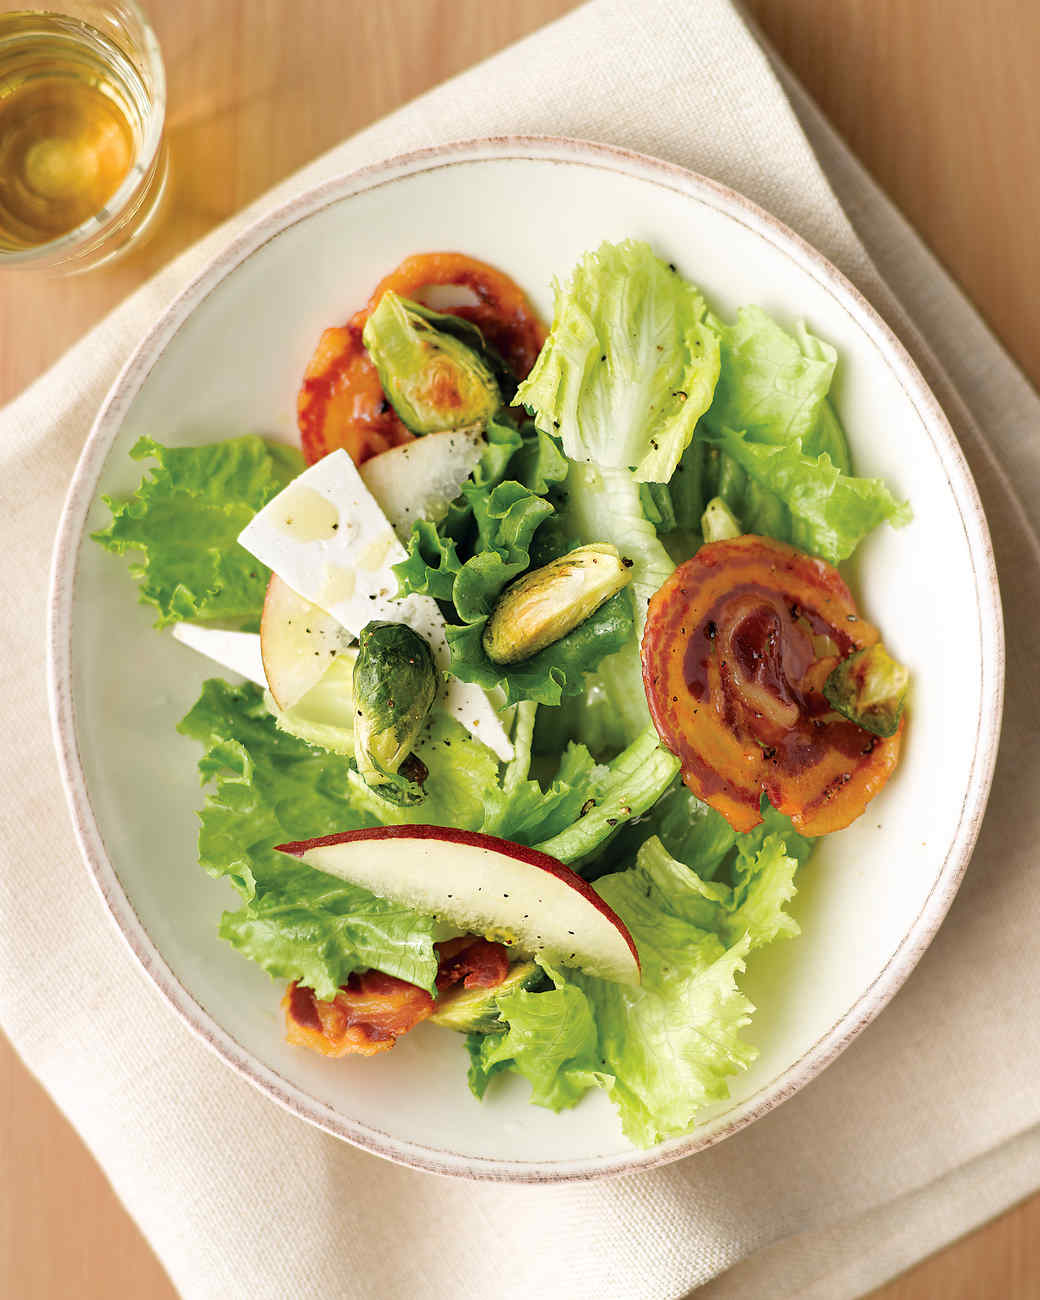 Salad with Pancetta Crisps, Roasted Brussels Sprouts, and Pear Recipe ...